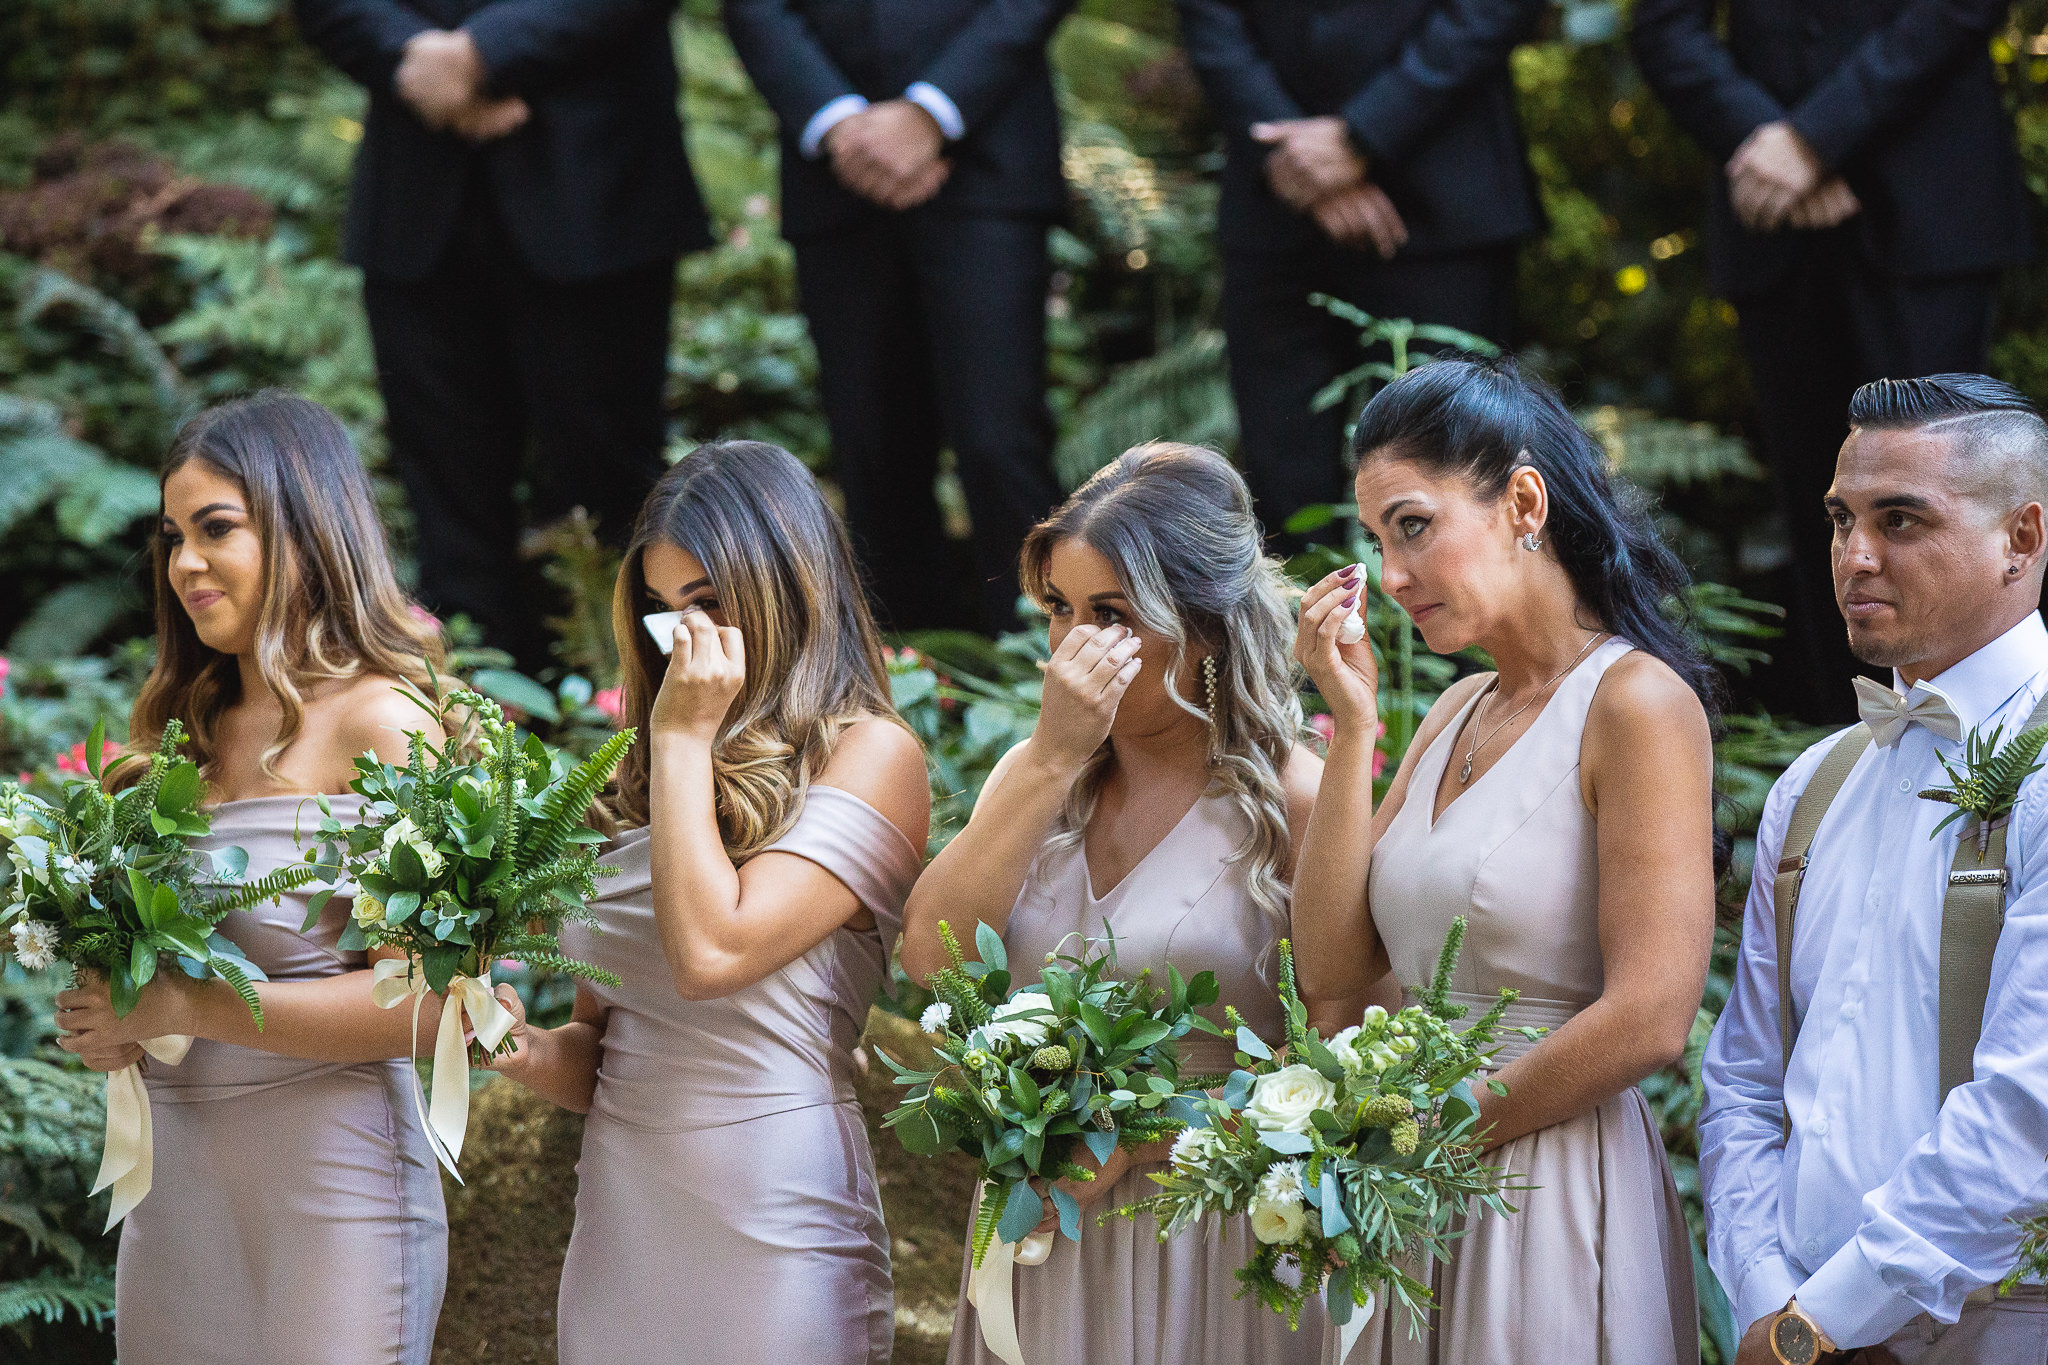 Someone was cutting onions during the vows.